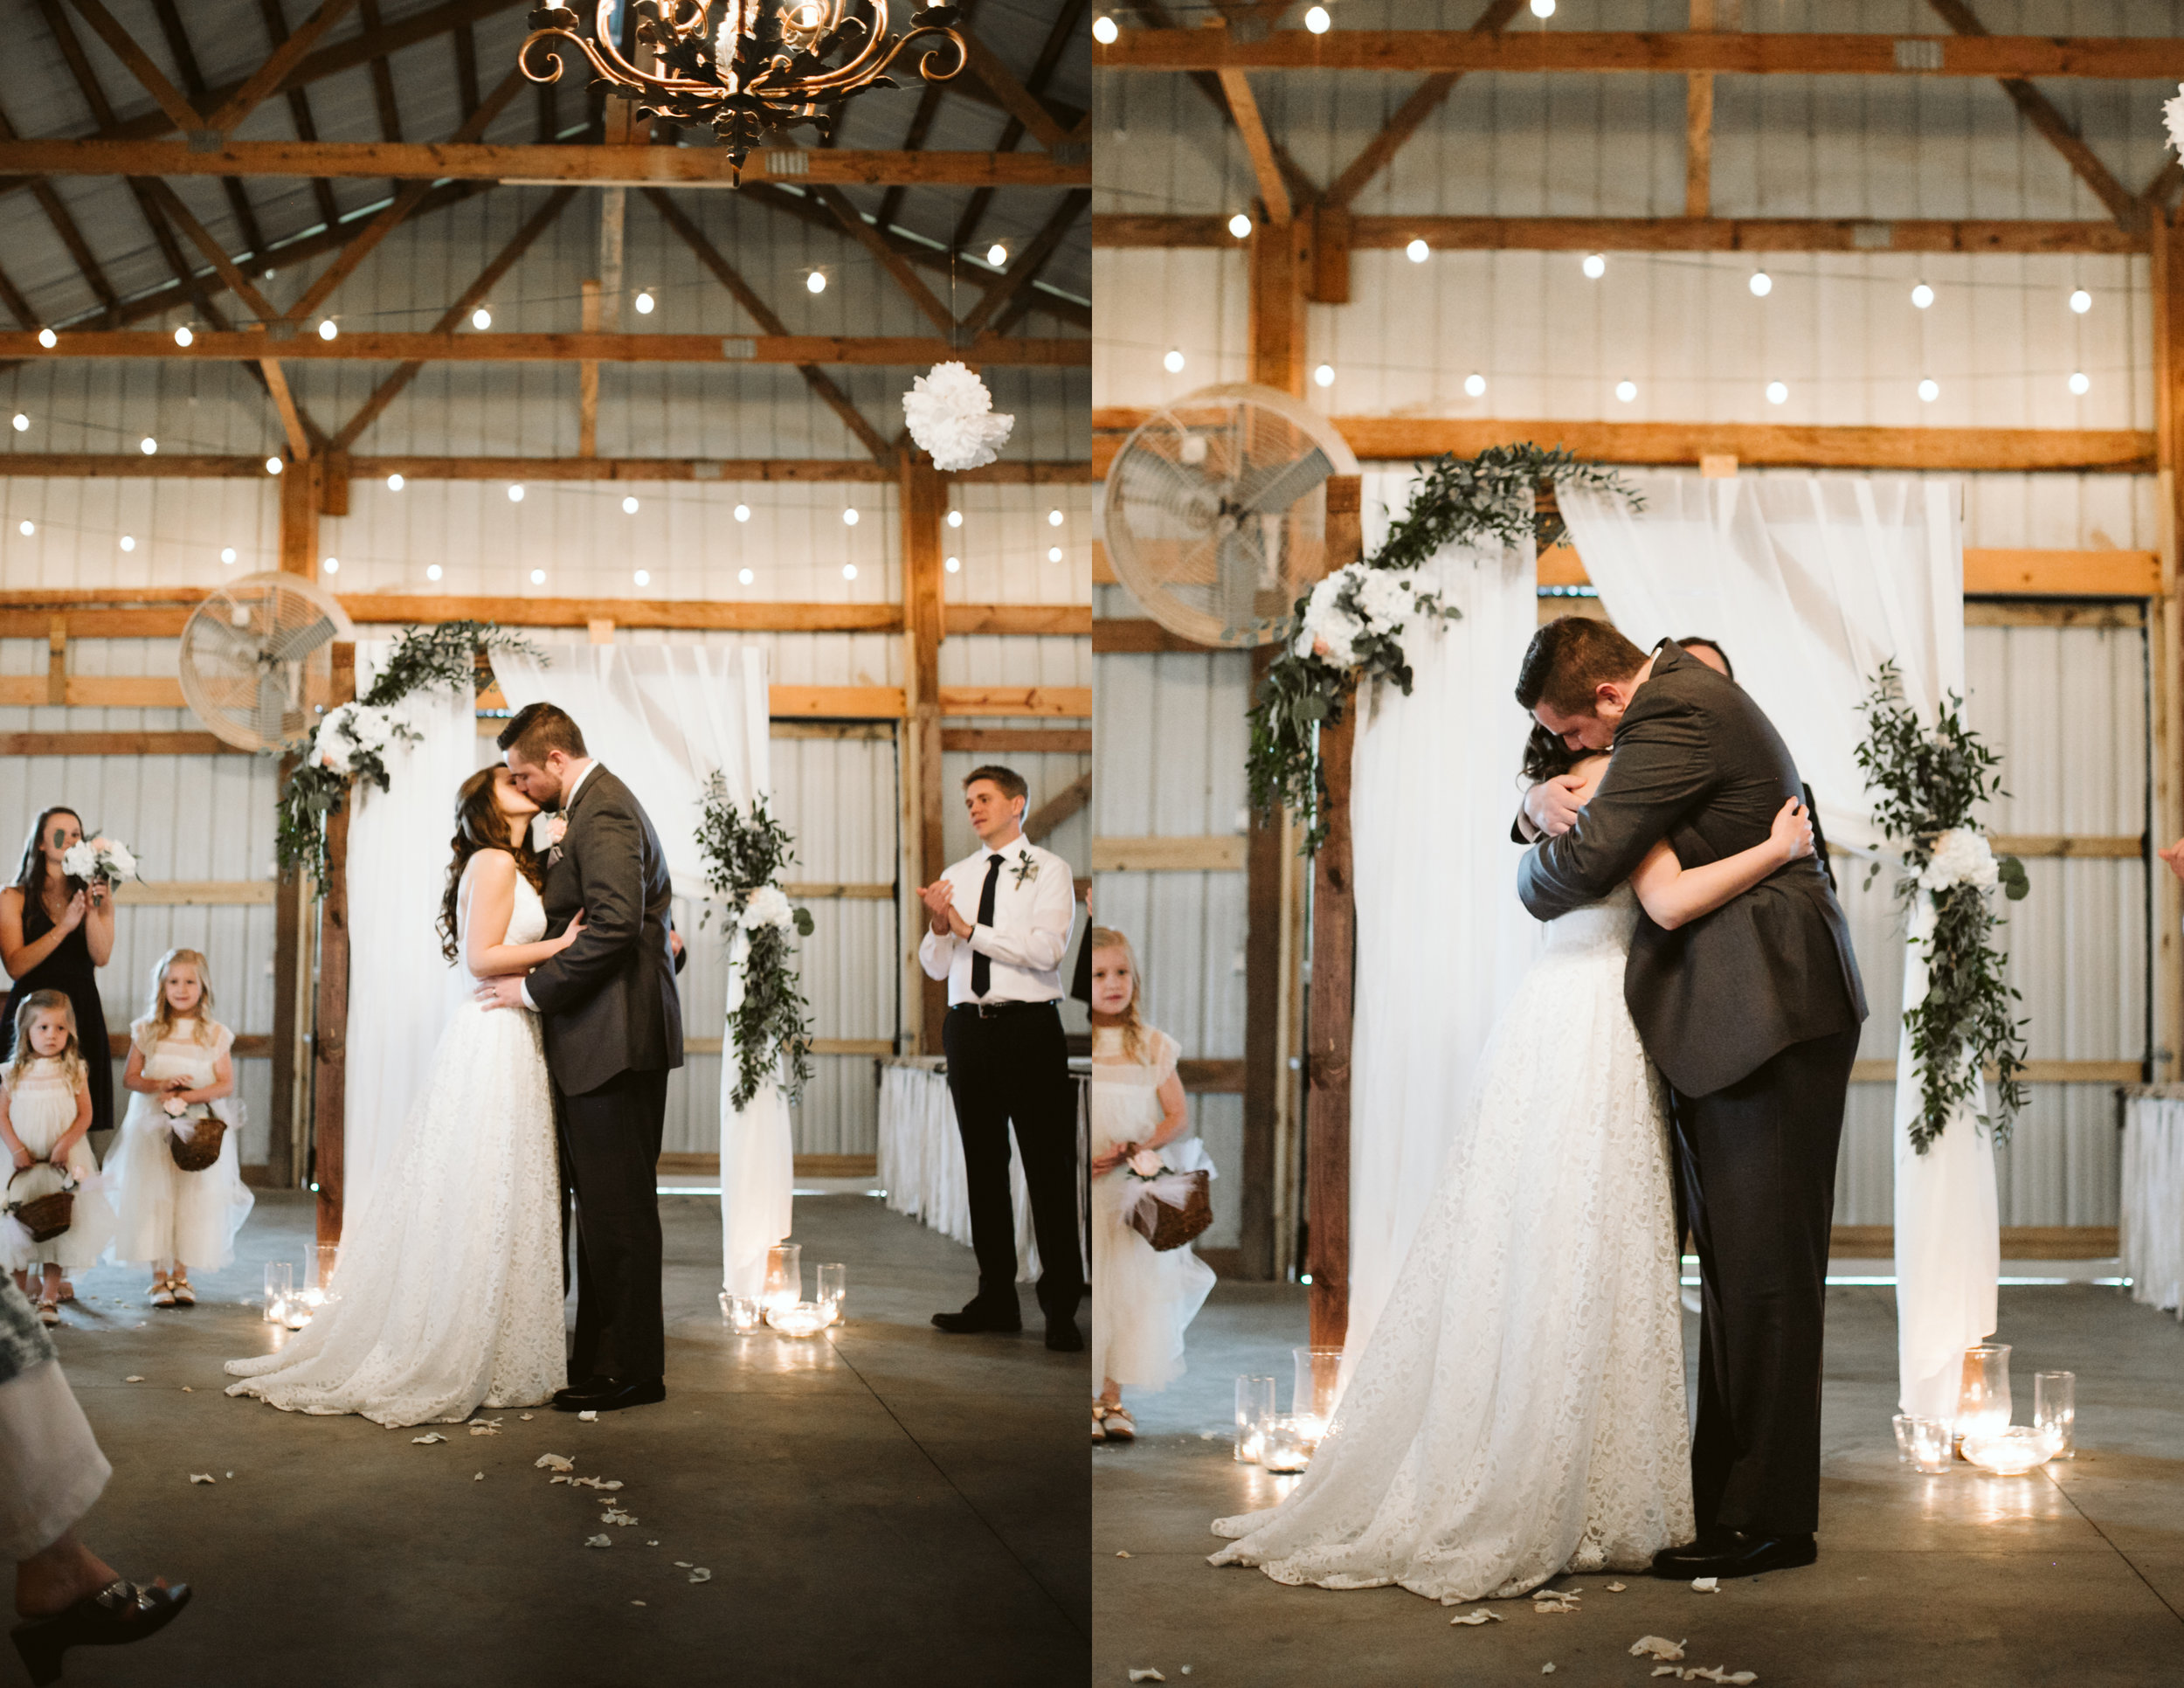 The first kiss at A Rustic Wedding at Barn in the Bend in Nashville, Tennessee